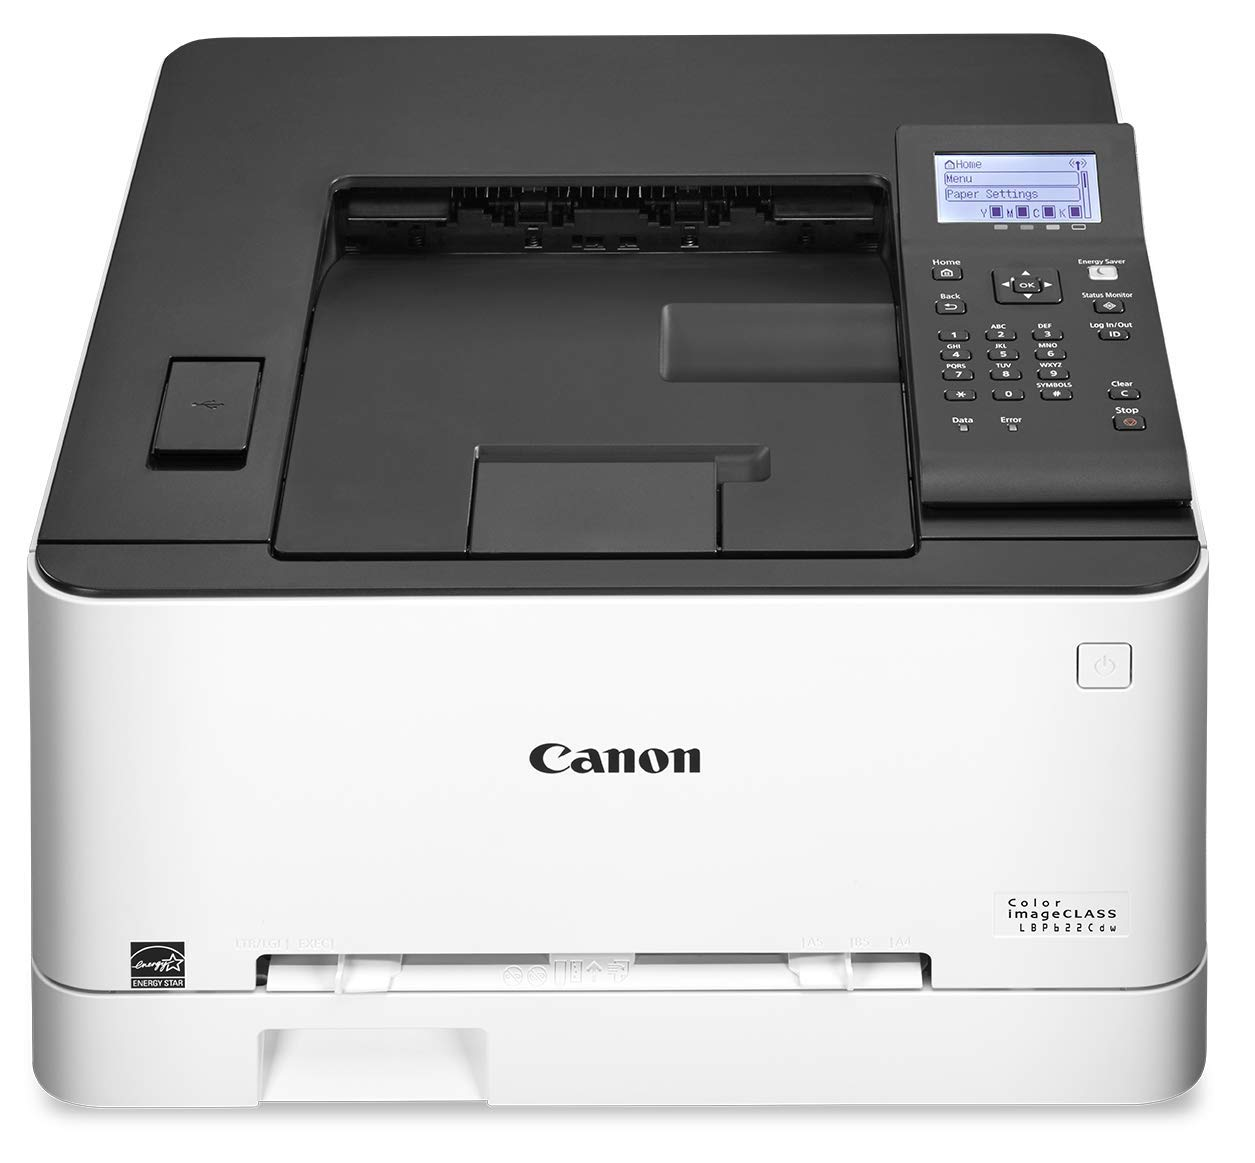 Canon Color imageCLASS LBP622Cdw -Wireless, Mobile Ready, Duplex Laser Printer